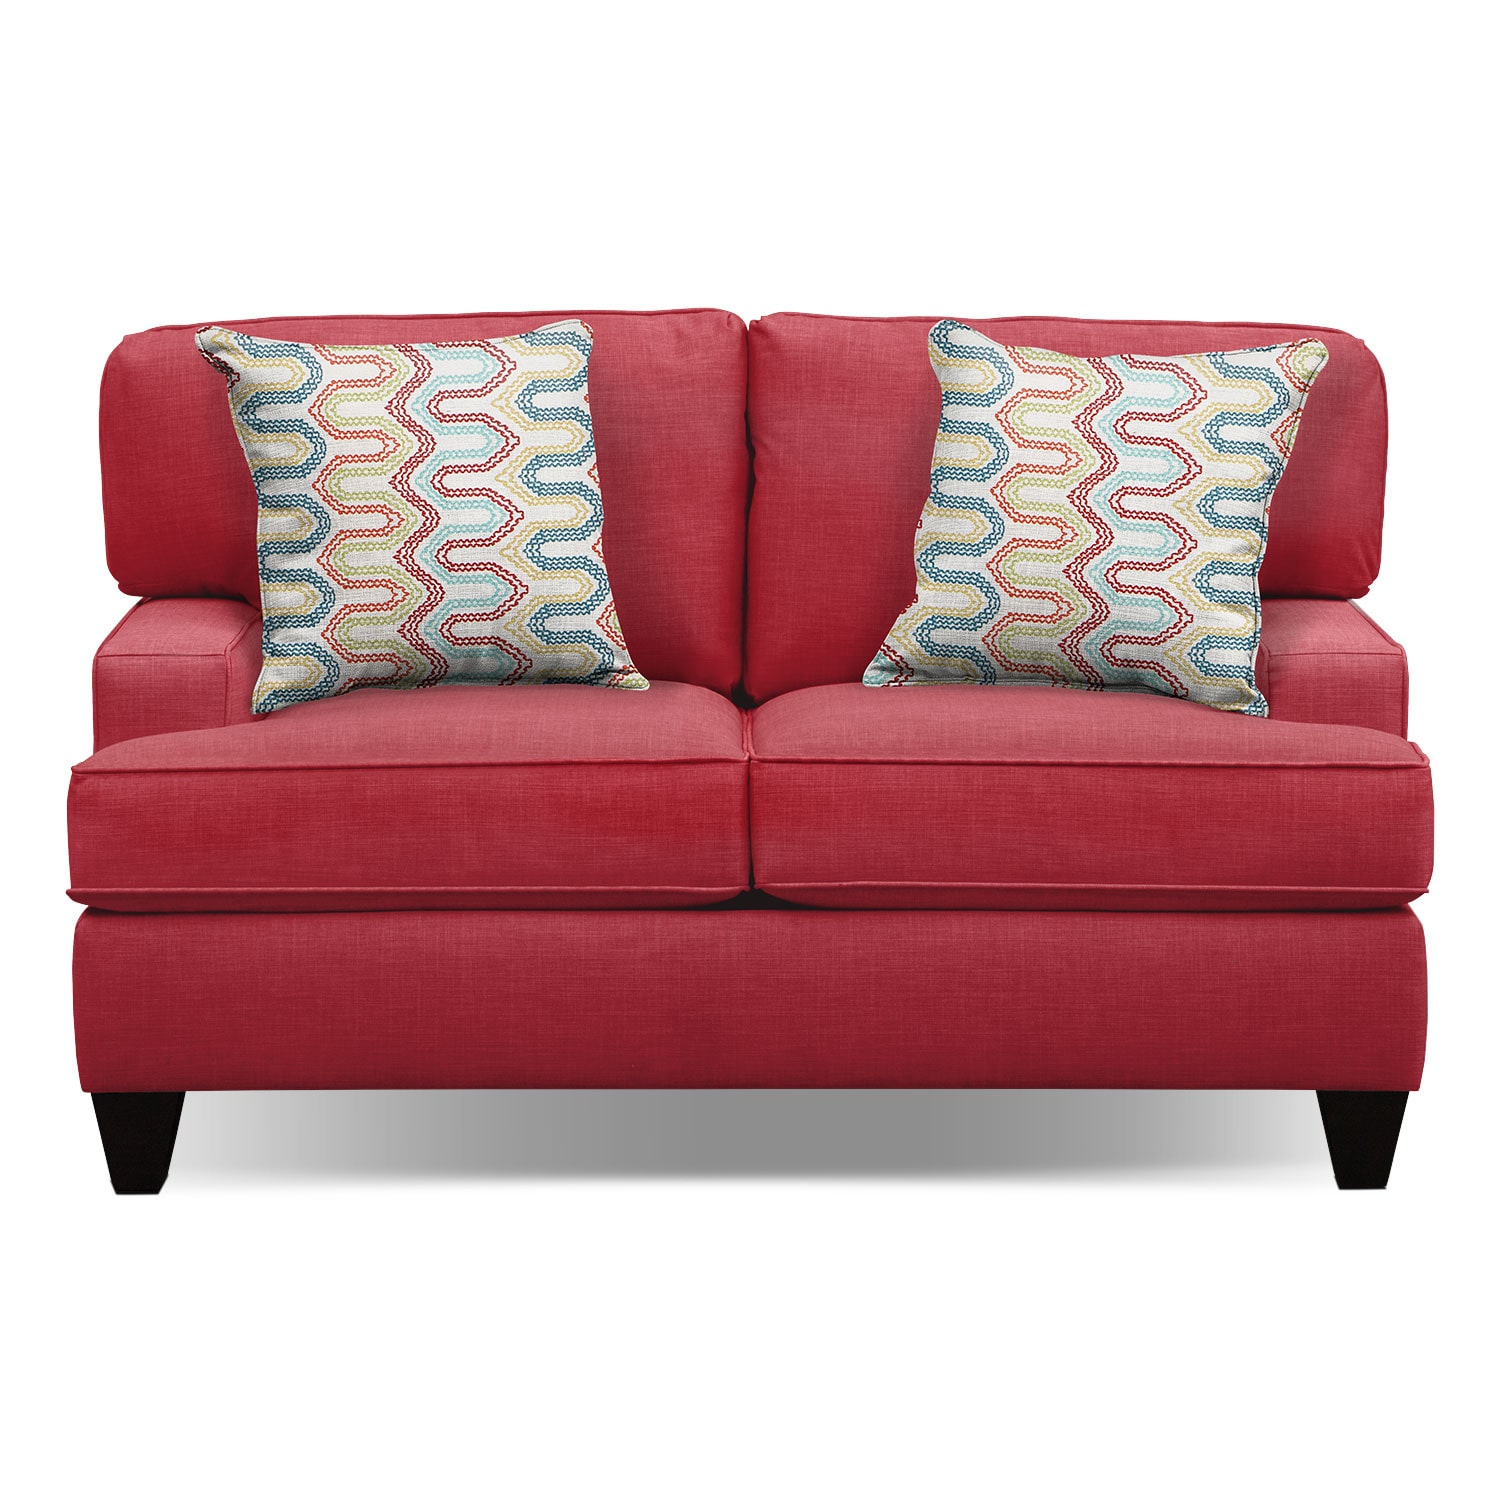 "Living Room Furniture - Conner Red 63"" Memory Foam Sleeper Sofa"